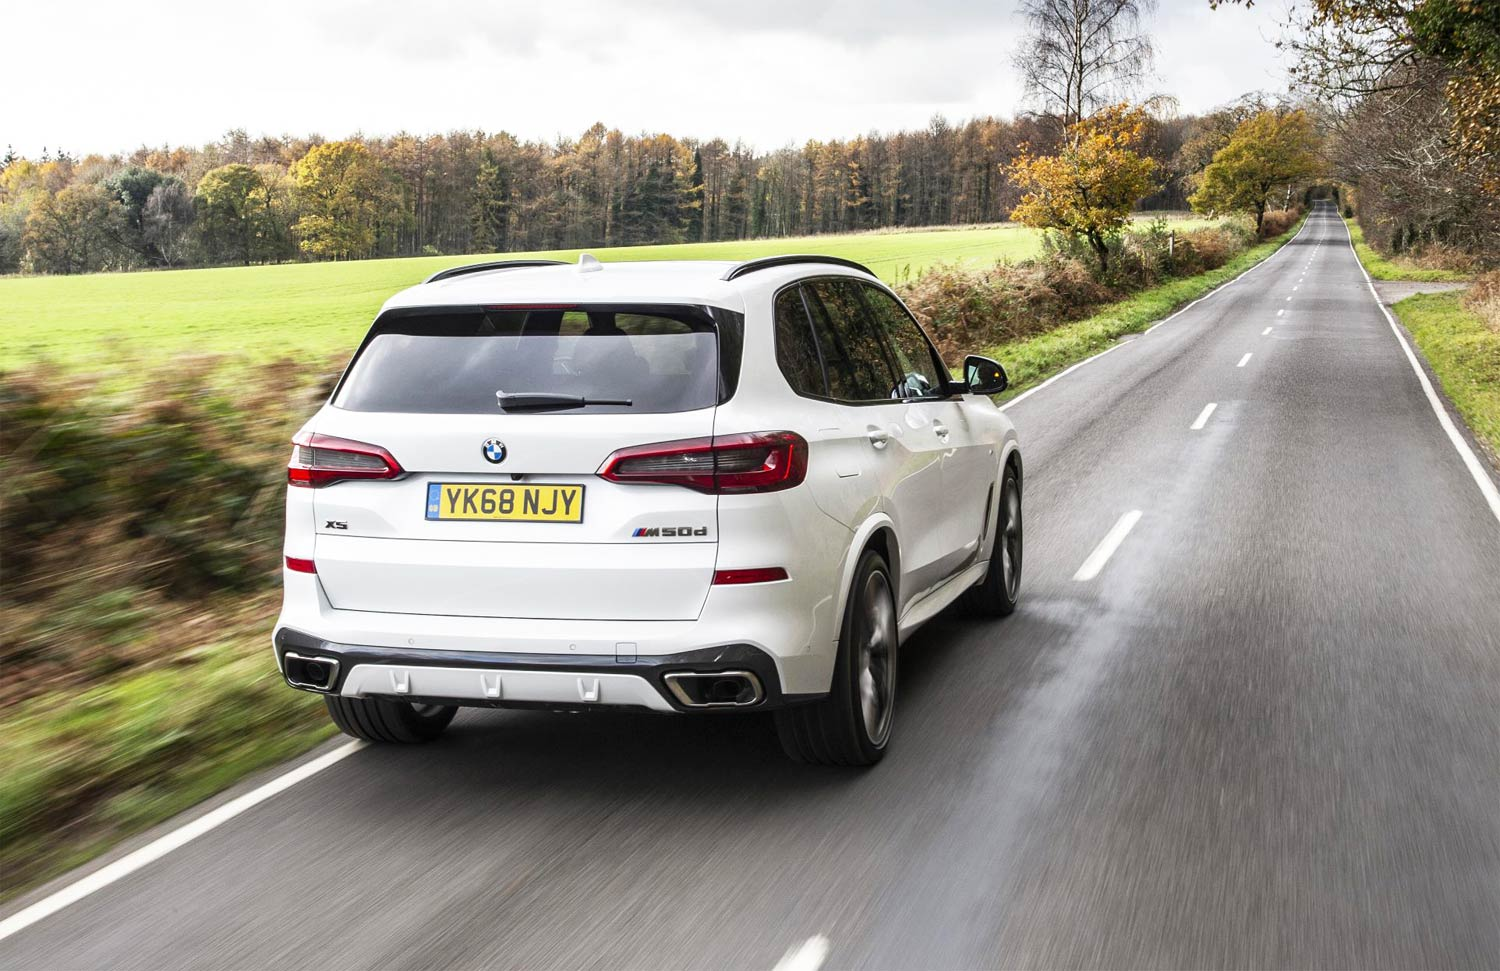 TRACKER 2018 league table of the Top 10 Most Stolen and Recovered Vehicles, reveals that the BMW X5 is back in the top spot